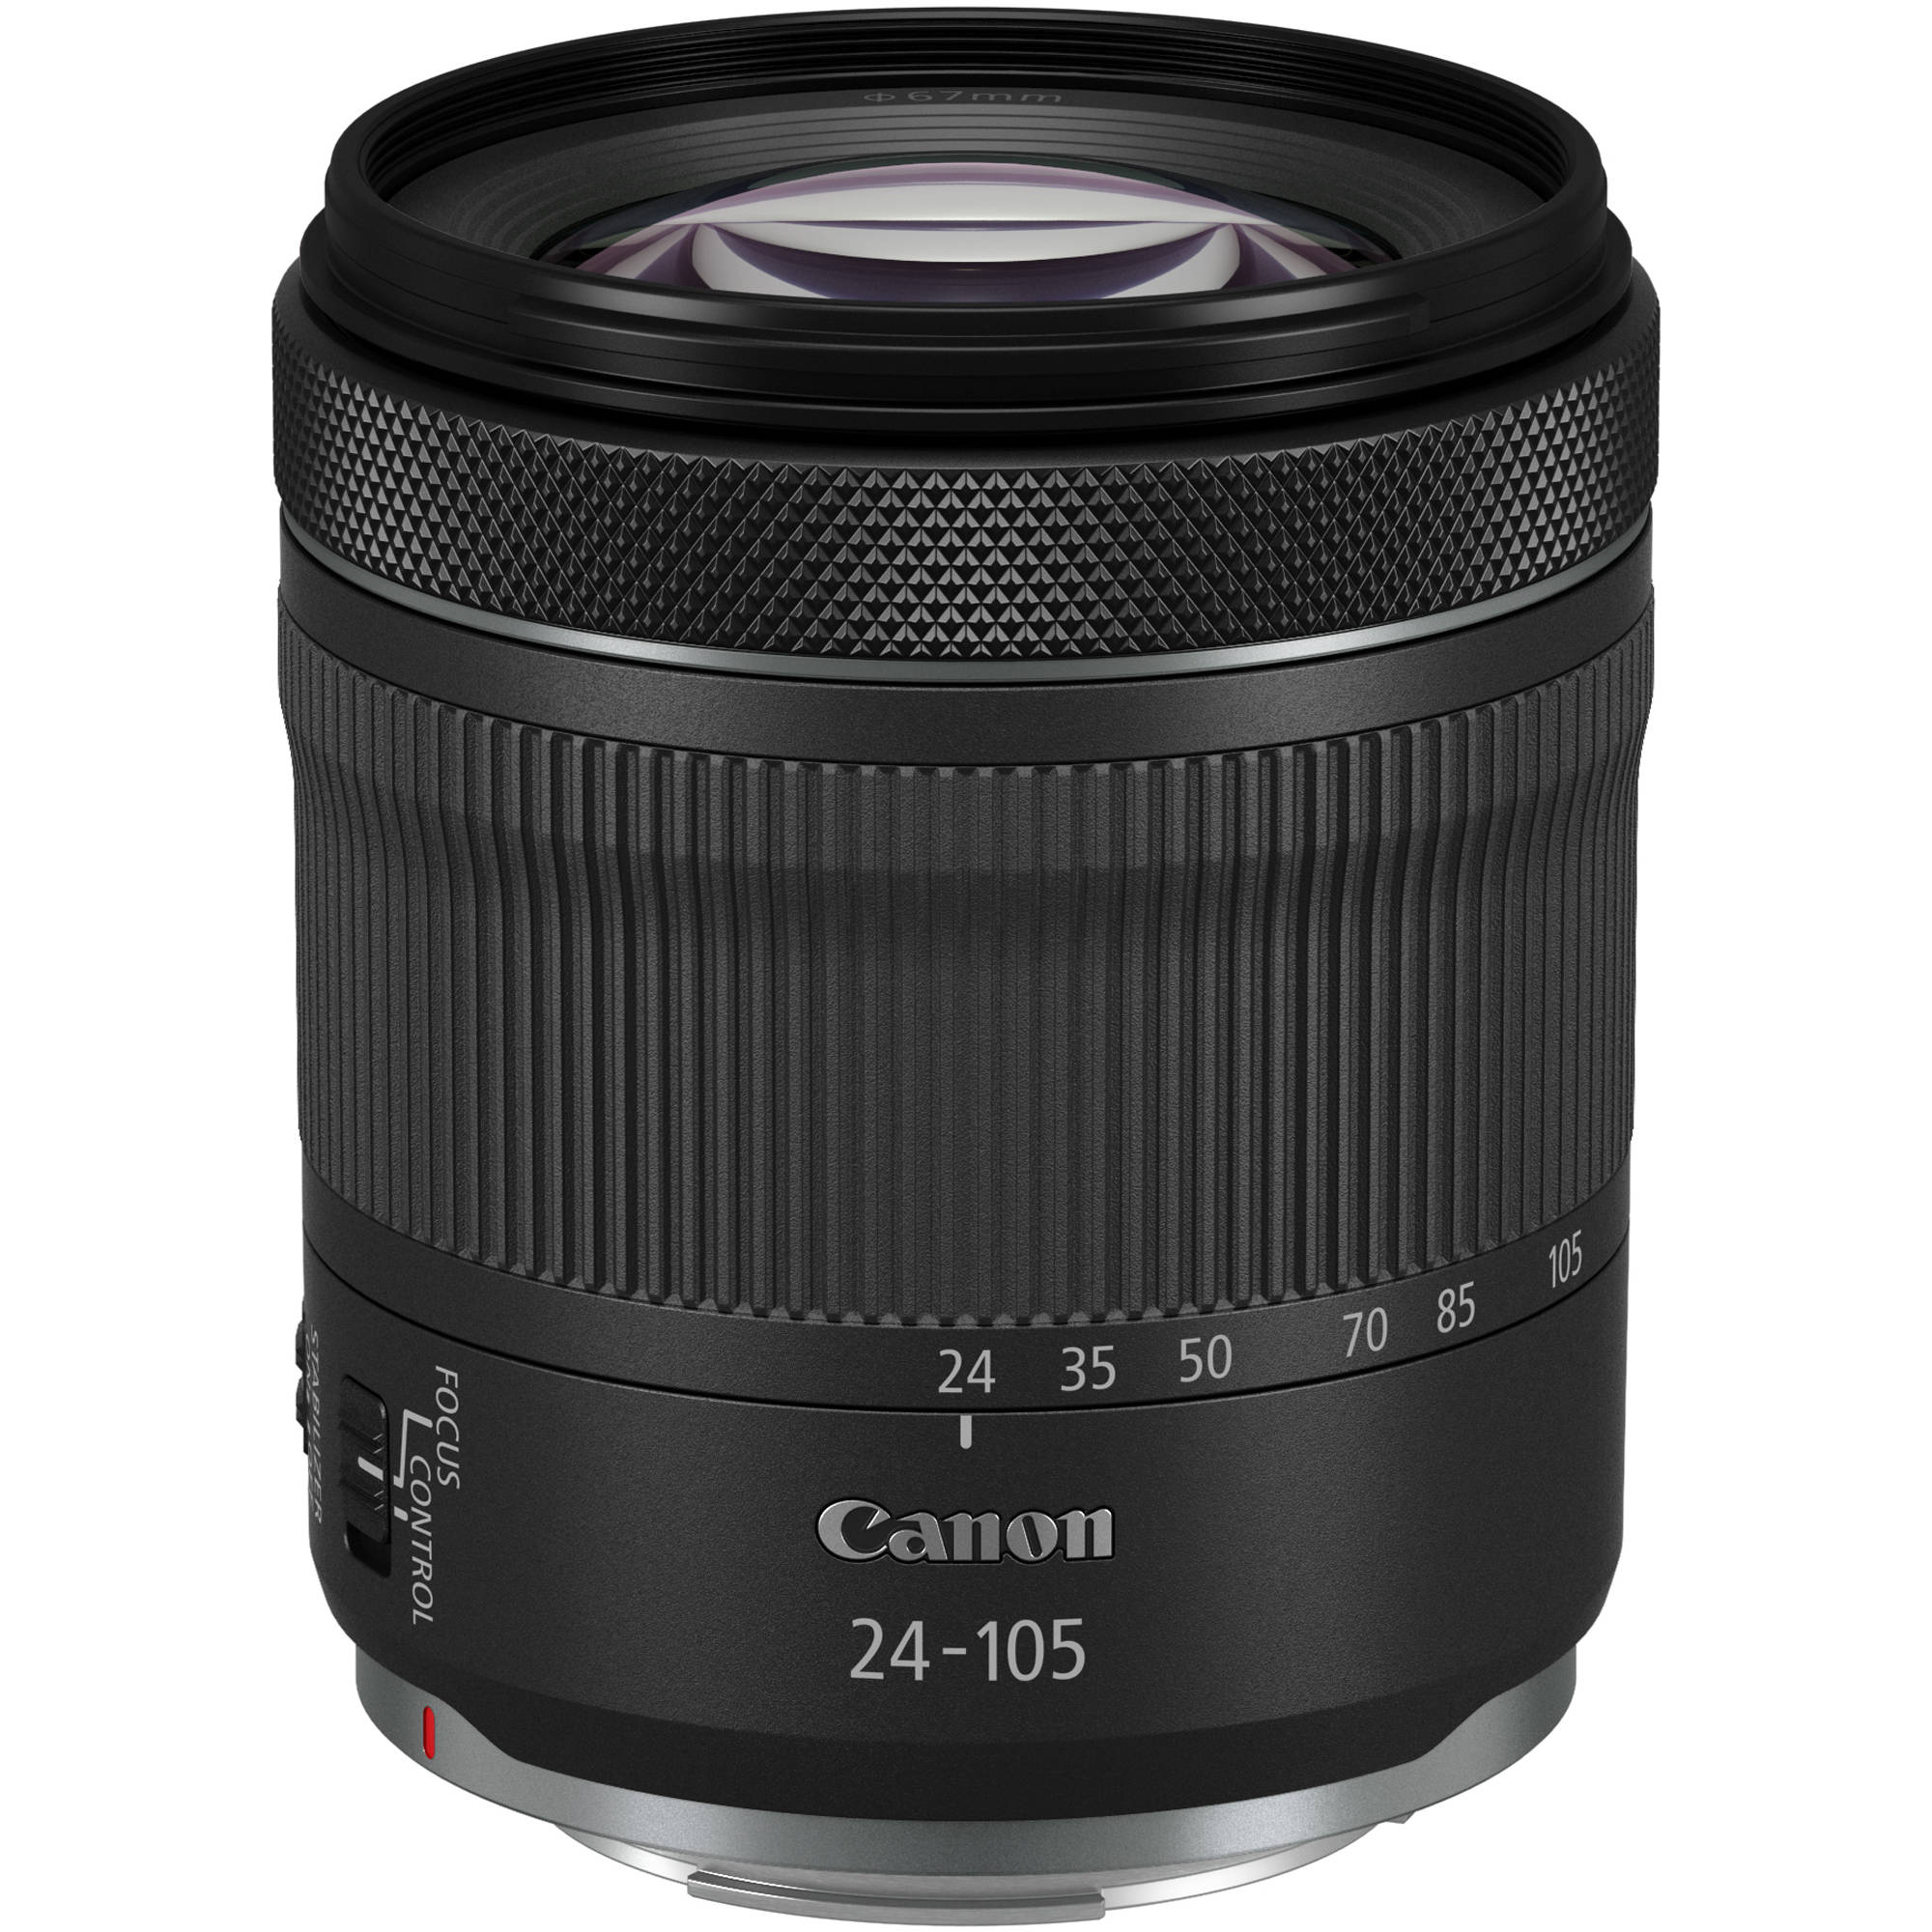 Canon RF 24-105mm f/4-7.1 IS STM Lens 4111C002 B&H Photo Video